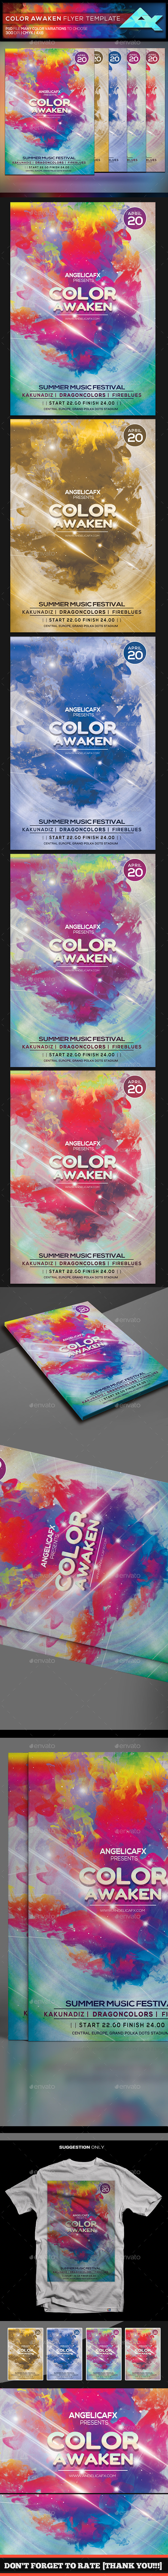 Color Awaken Flyer Template - Flyers Print Templates